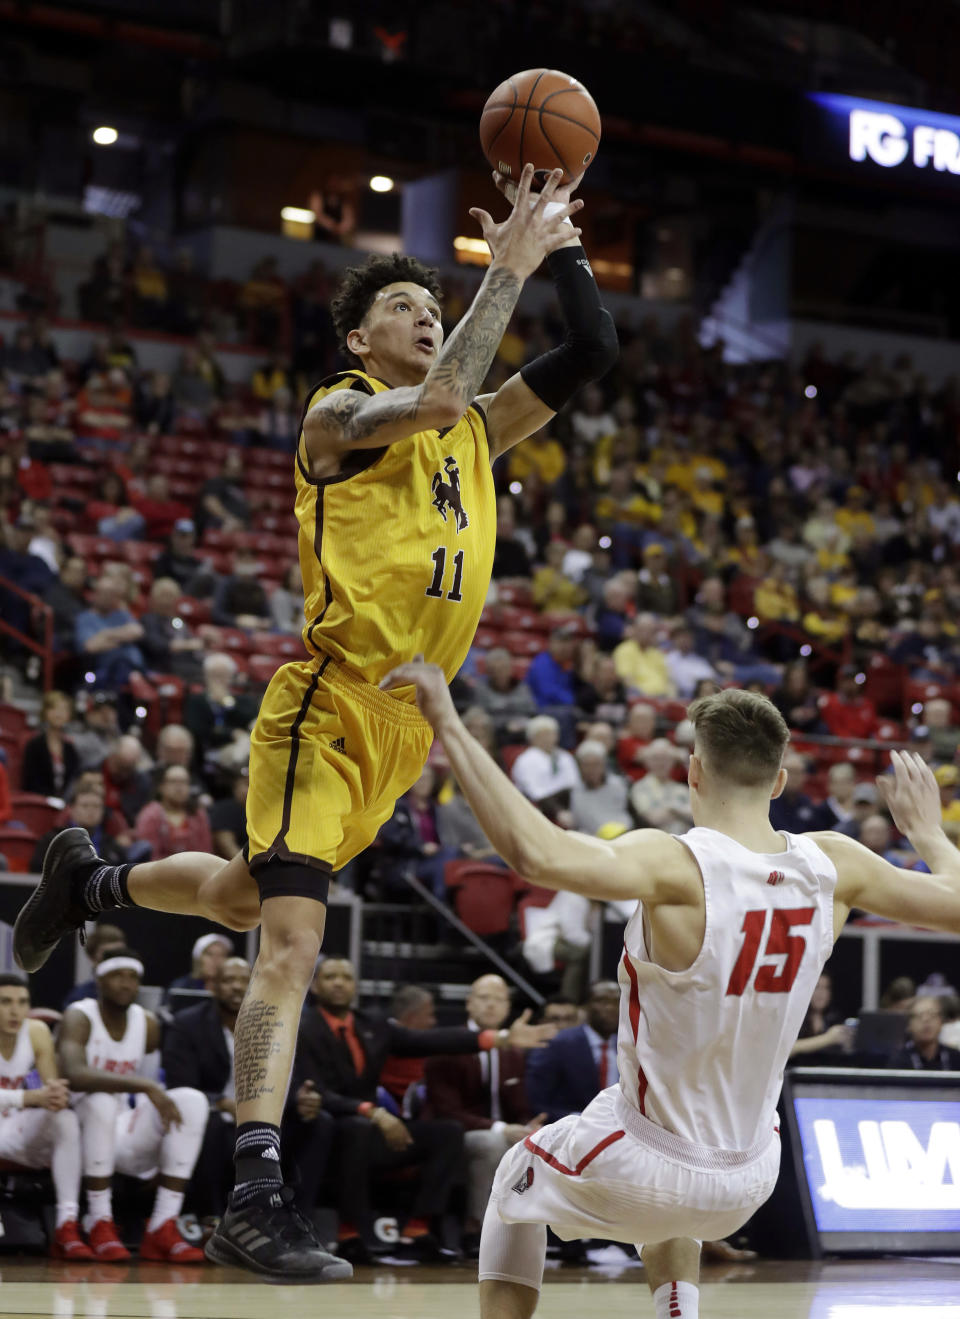 Wyoming's Trace Young shoots over New Mexico's Trey Porter during the first half of an NCAA college basketball game in the Mountain West Conference tournament, Wednesday, March 13, 2019, in Las Vegas. (AP Photo/Isaac Brekken)